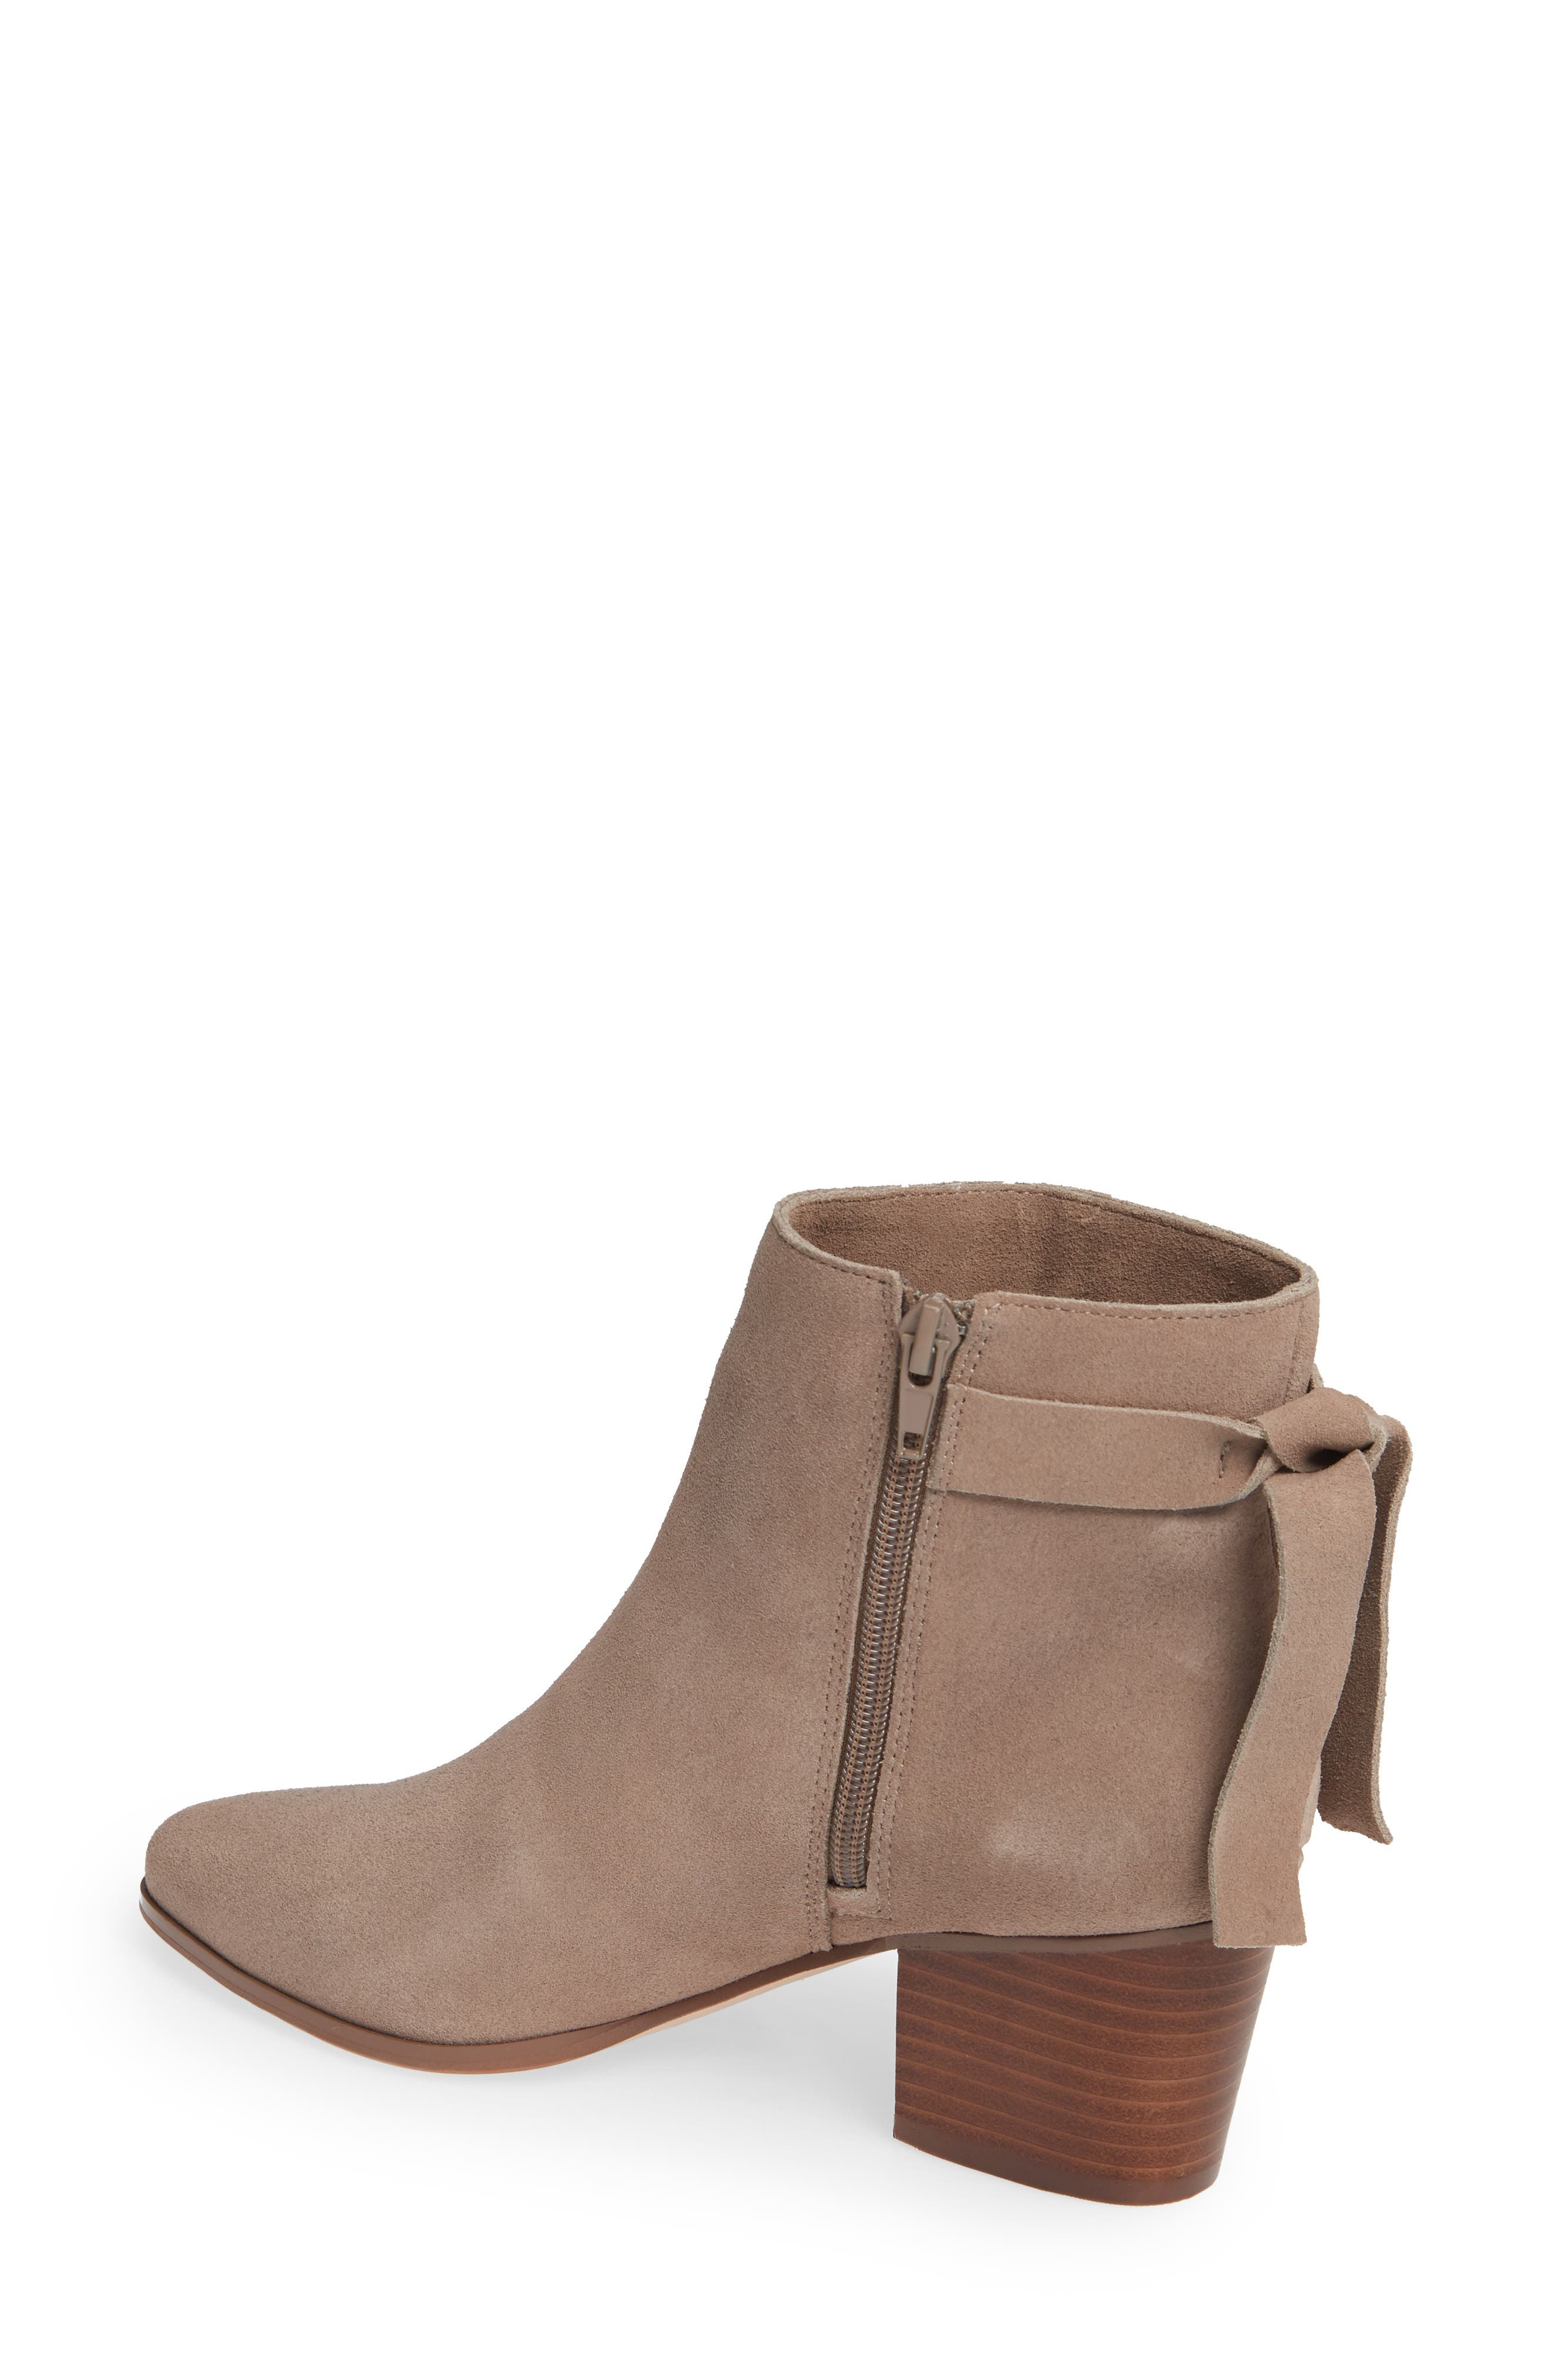 SOLE SOCIETY, Rhilynn Bootie, Alternate thumbnail 2, color, FALL TAUPE SUEDE